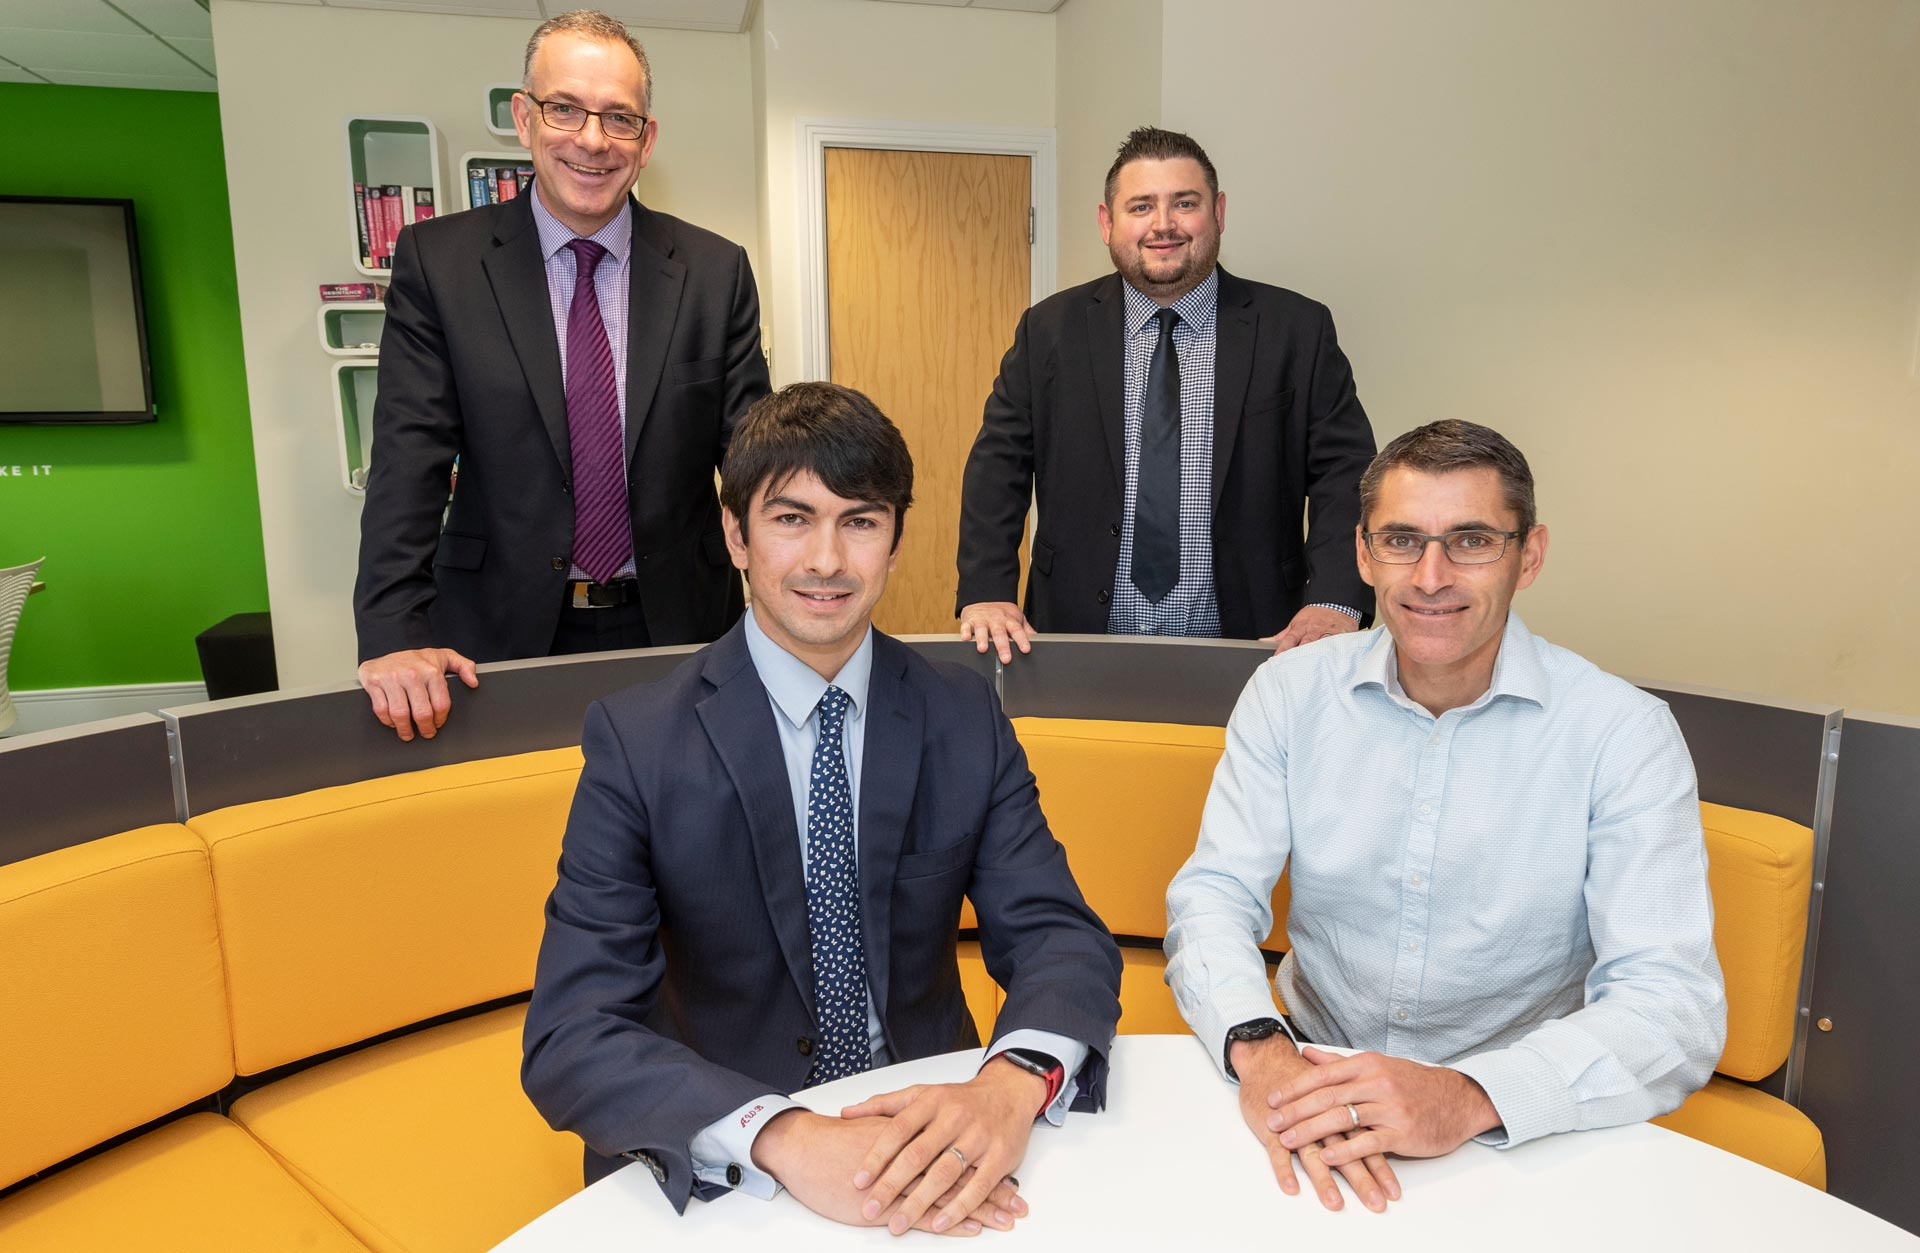 Enable International secures £1.4 million debt funding from Barclays